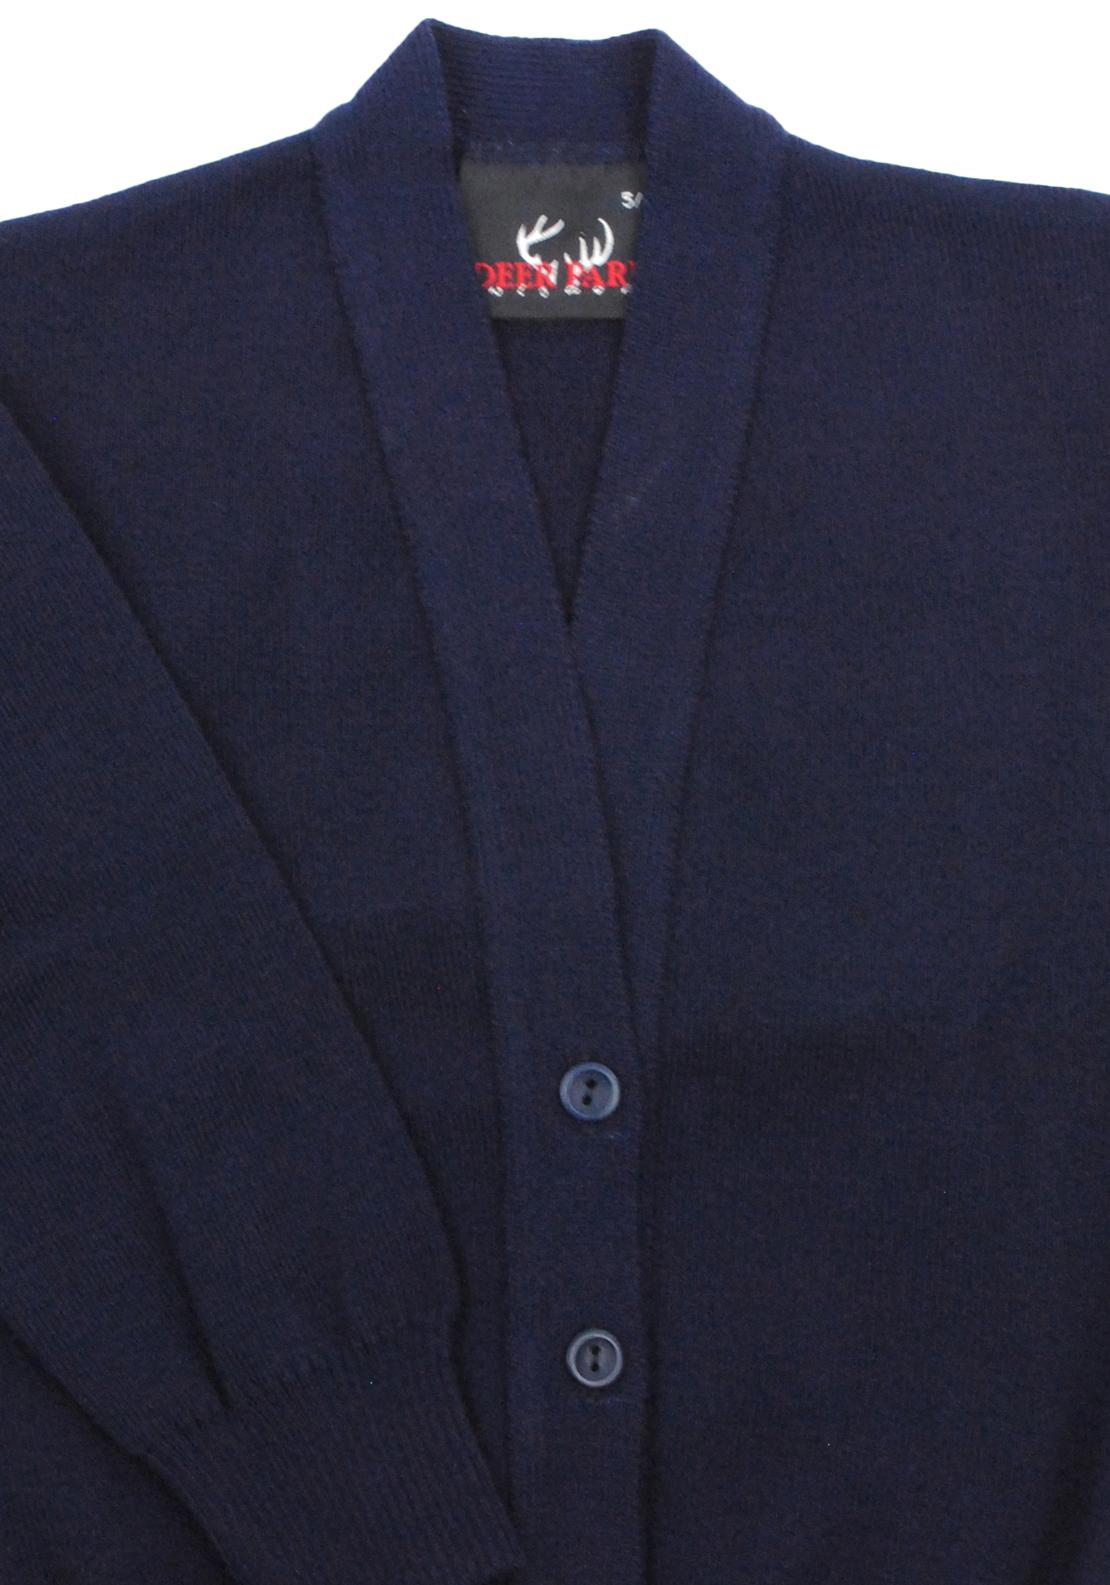 Deer Park School Cardigan, Navy